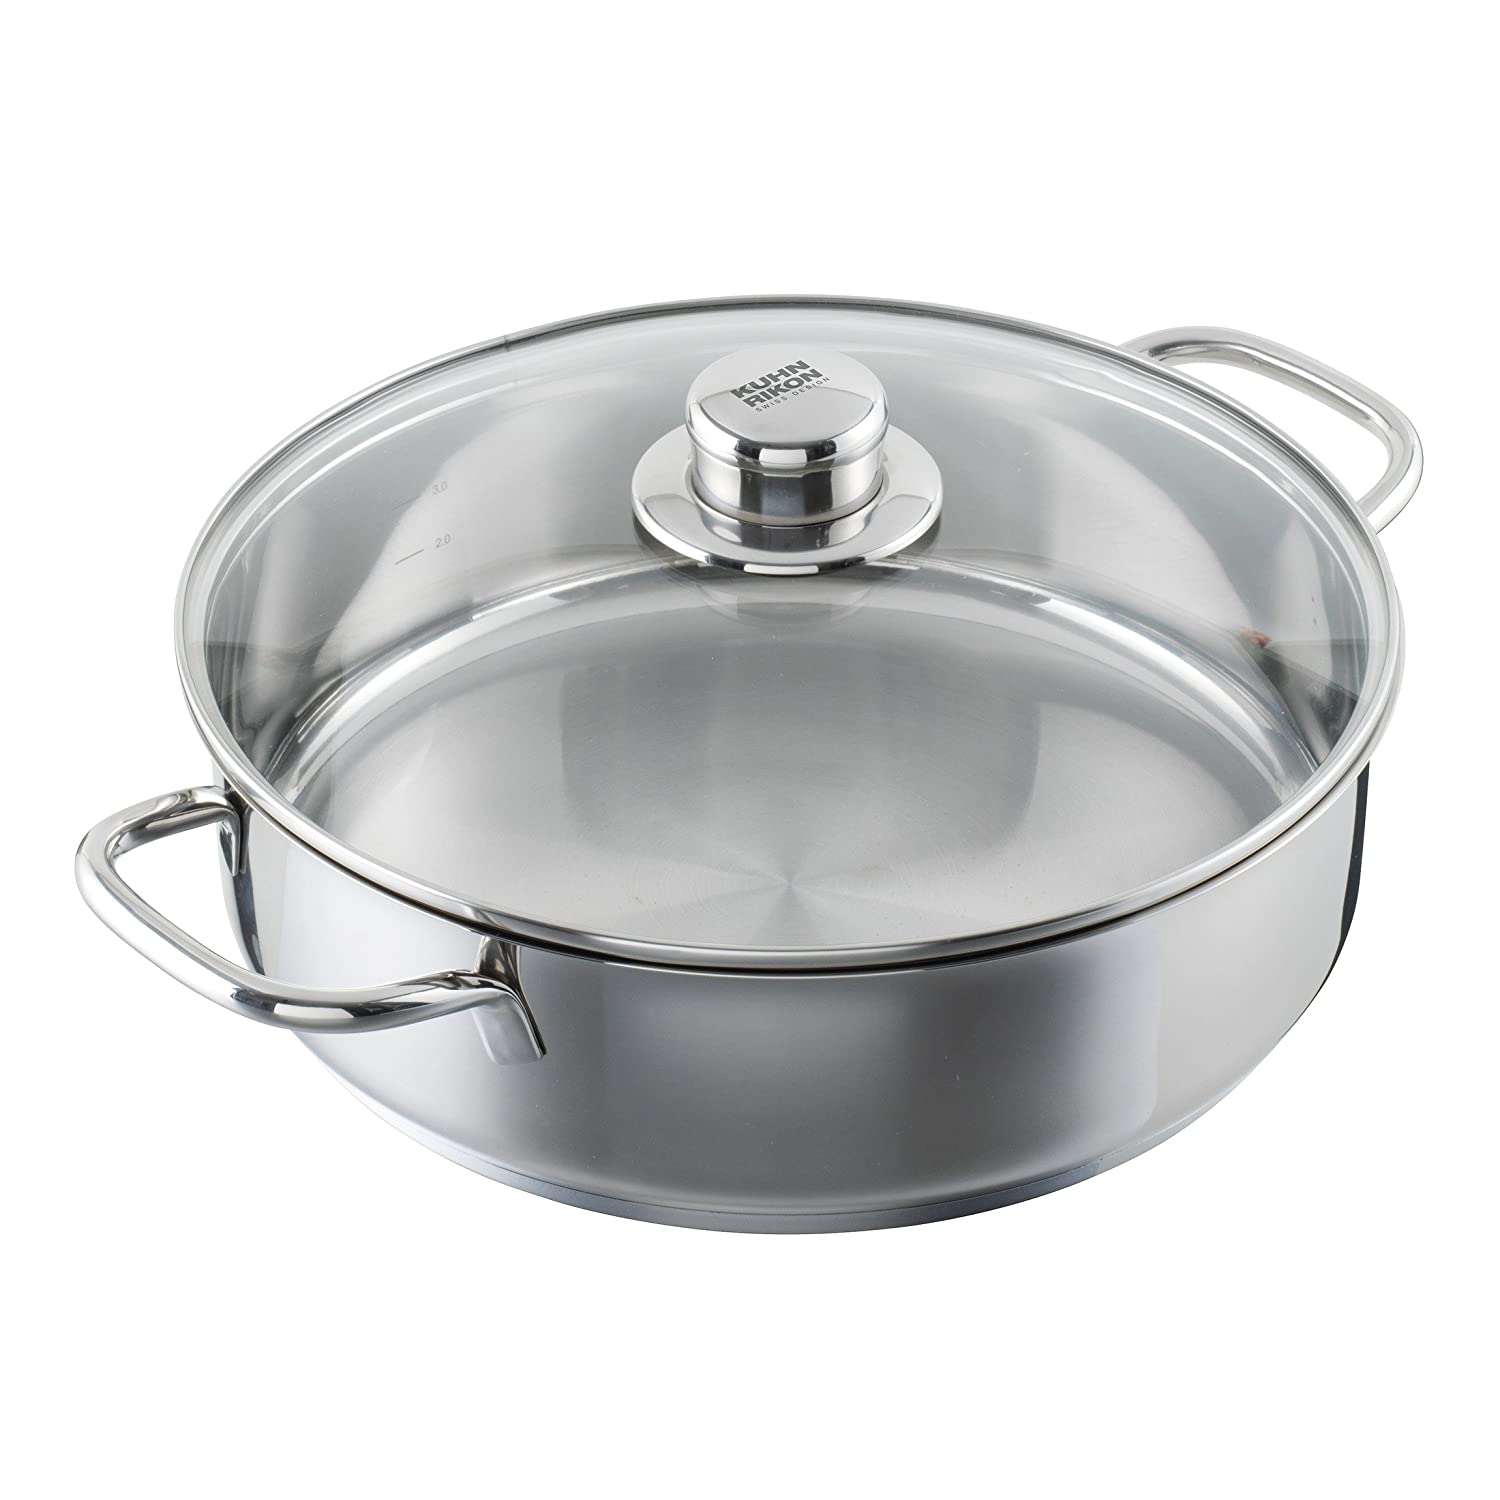 "Kuhn Rikon""Today"" 5 L Dutch Oven, 11.02"", Silver"